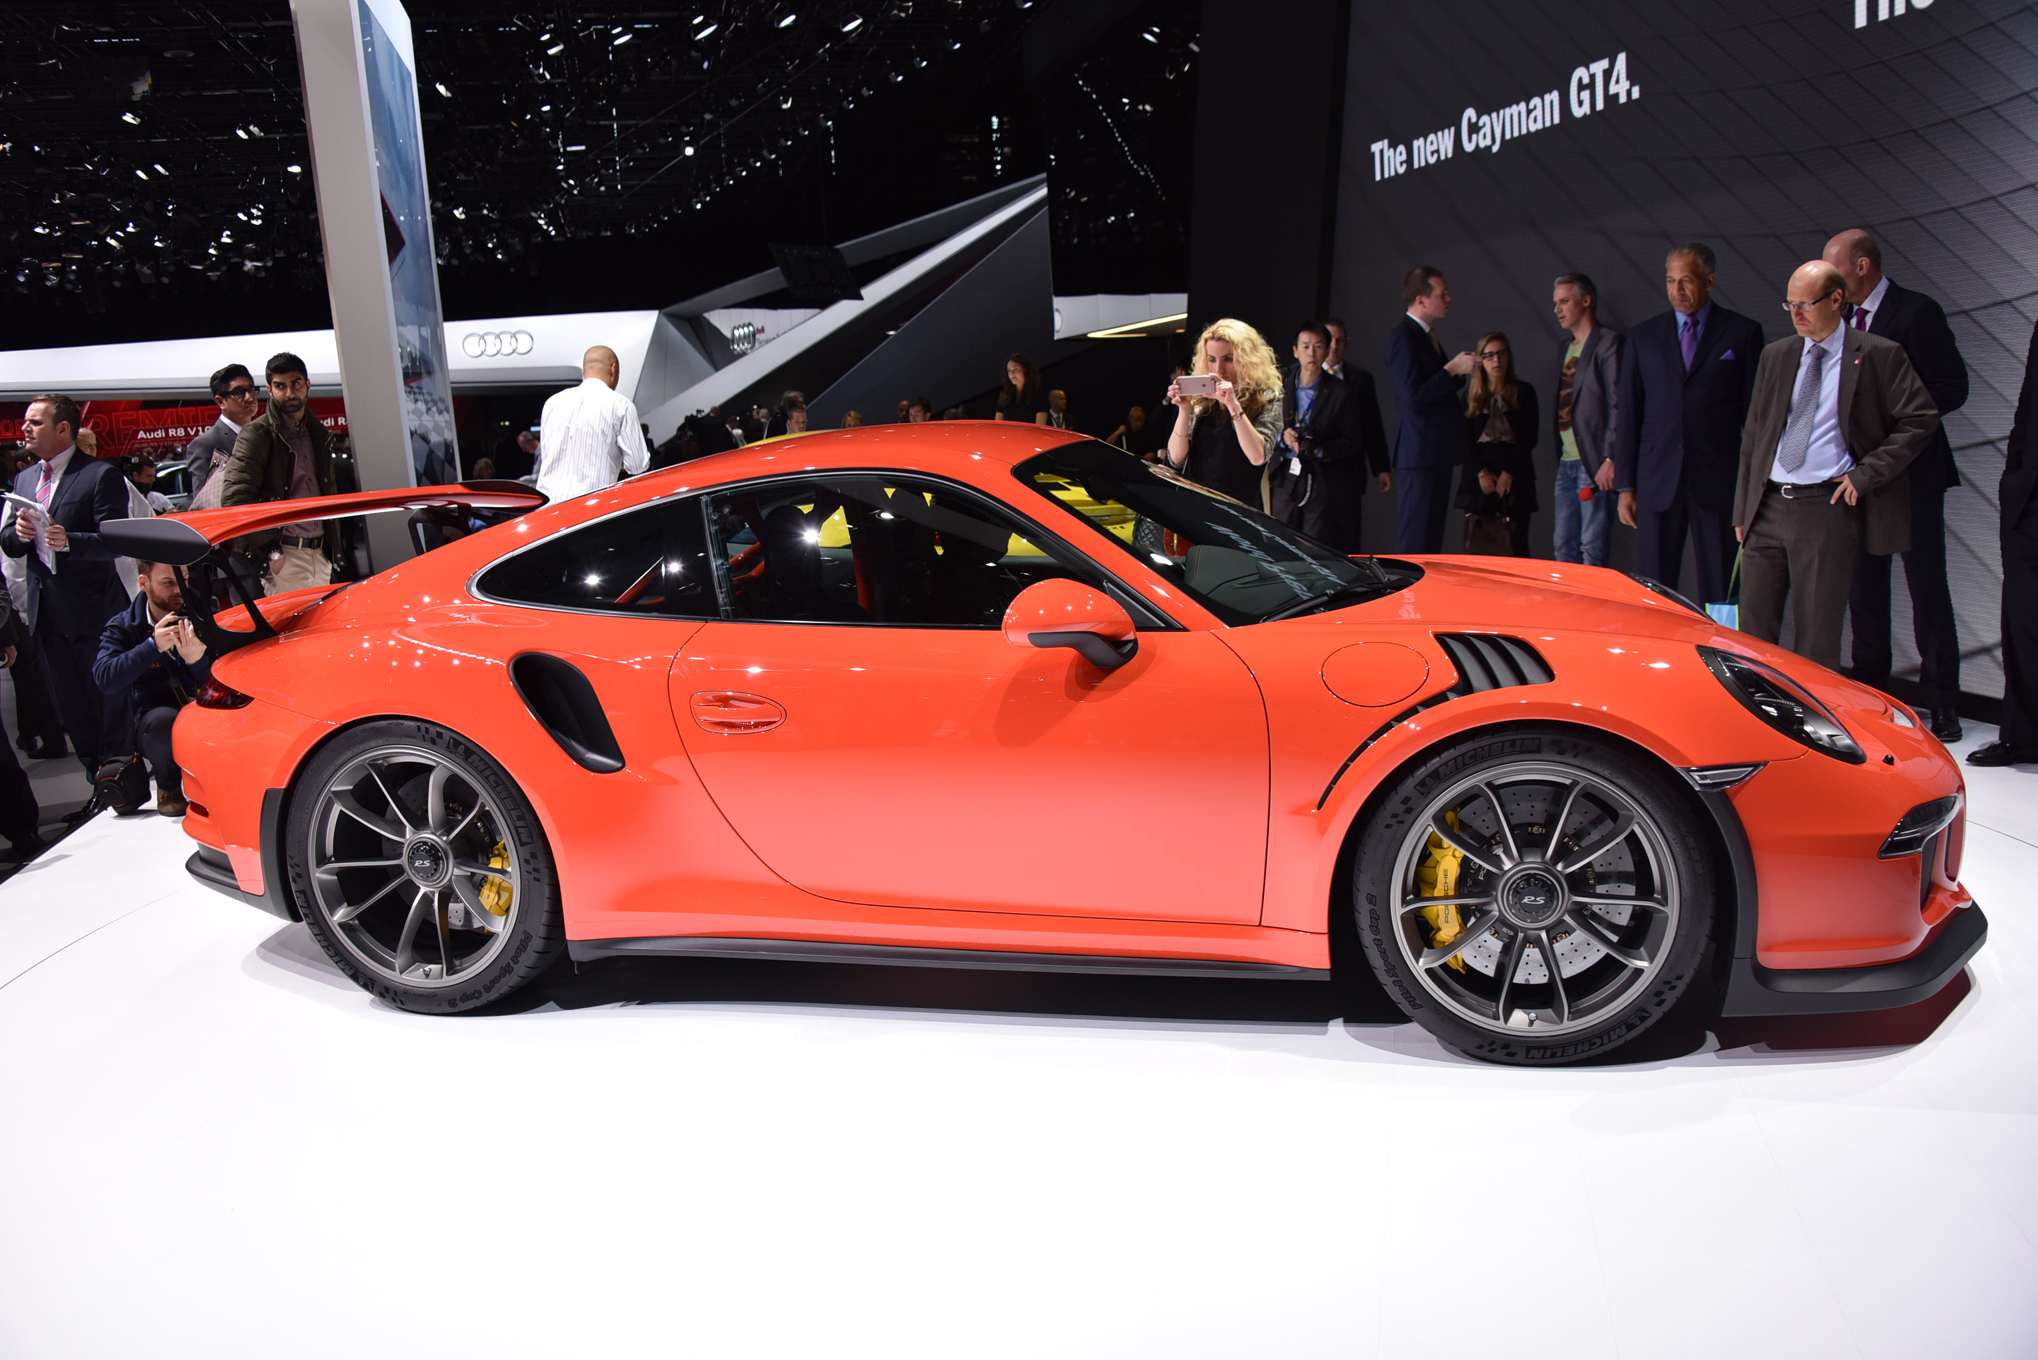 2016 Porsche 911 GT3 RS Arrives in U.S. This July With 500 HP ...